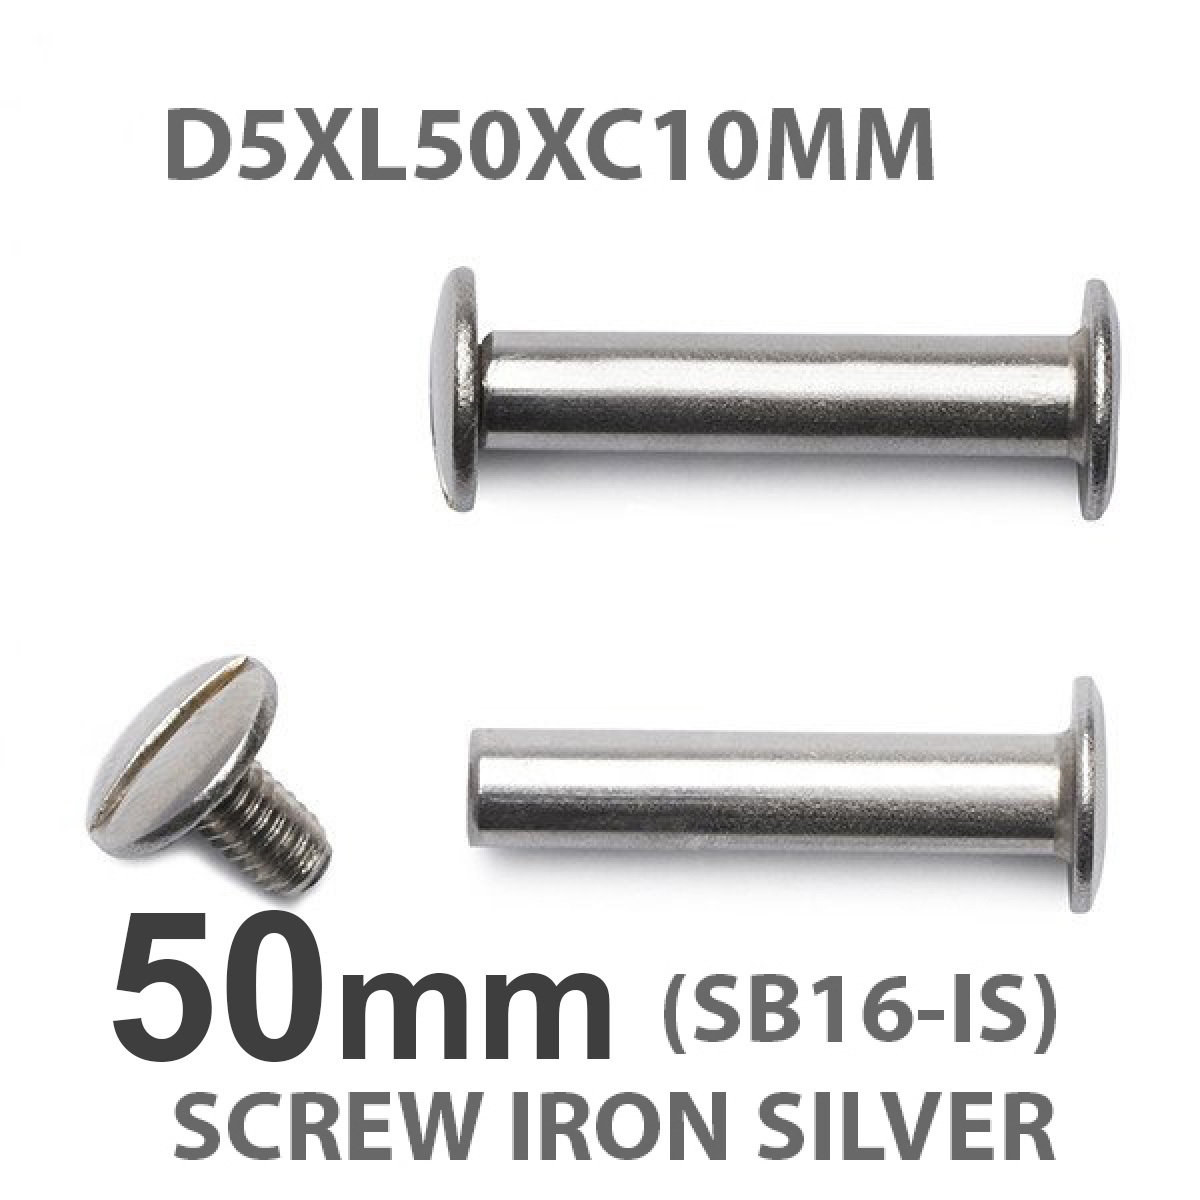 50mm screw silver.jpg